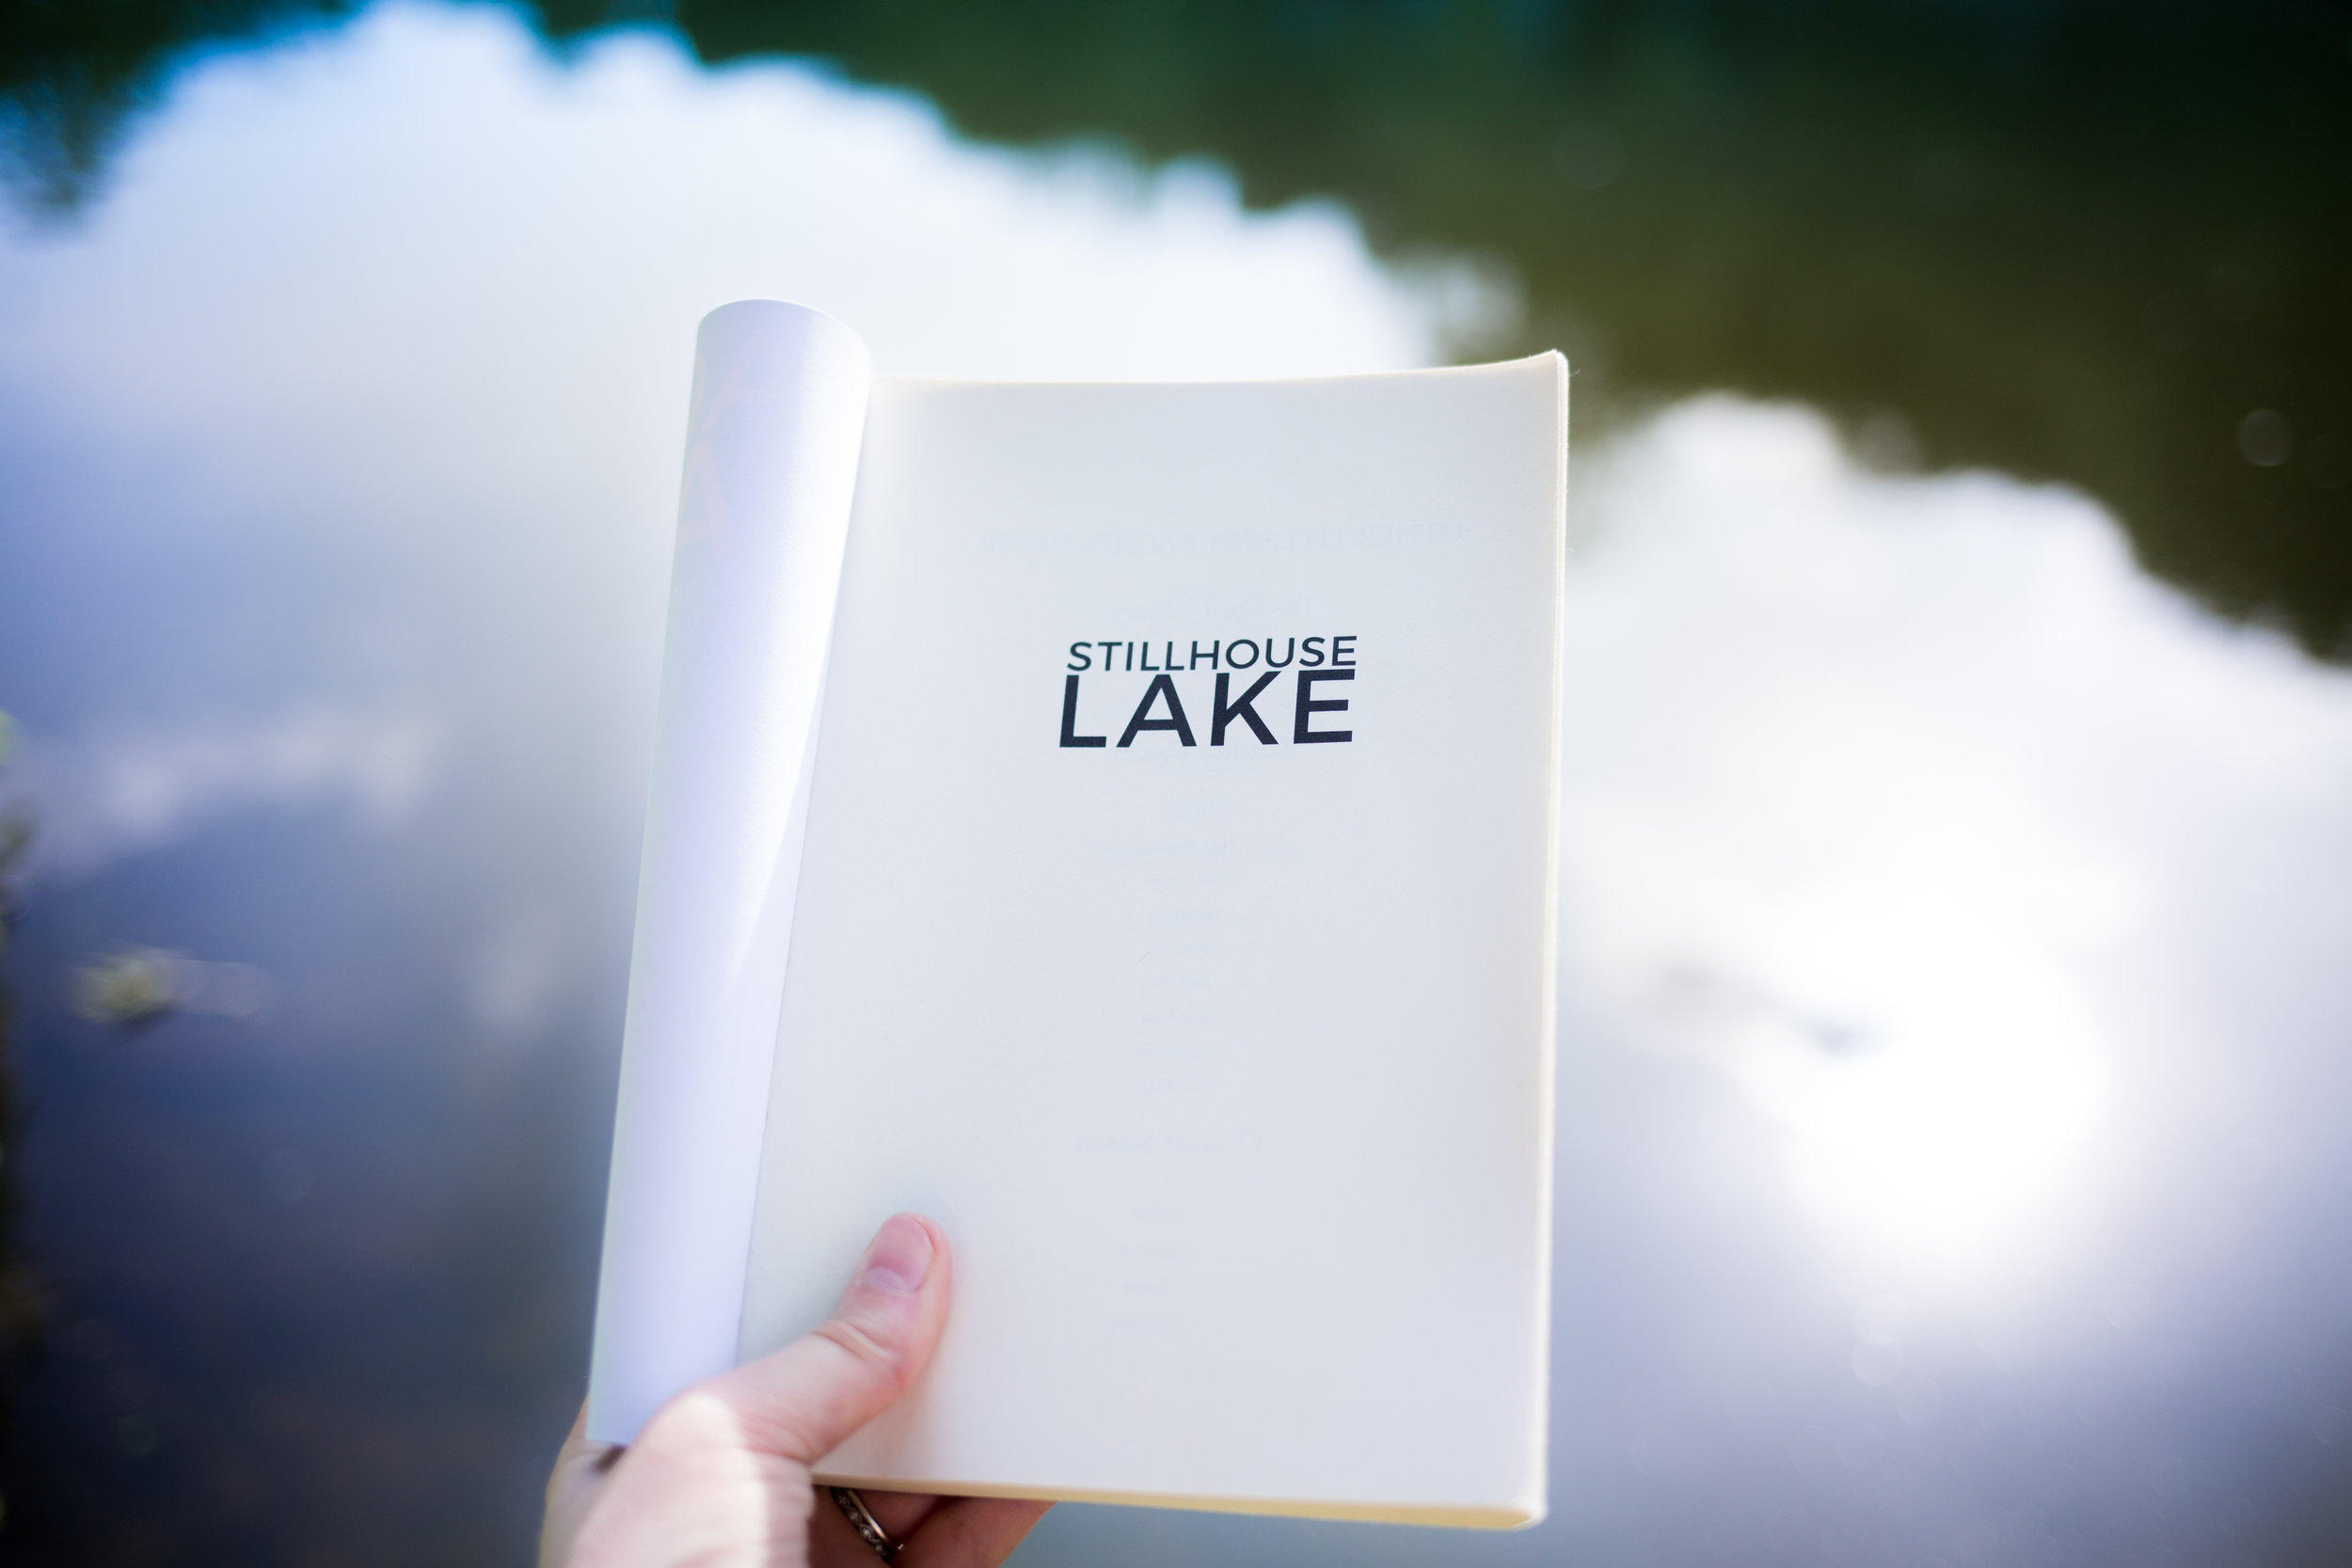 Stillhouse Lake Rachel Caine Thomas and Mercer Book Review A Book In Her Purse Book Blog Carolyn Emily Hommes Carolyn Emily Photography Nashville Tennessee